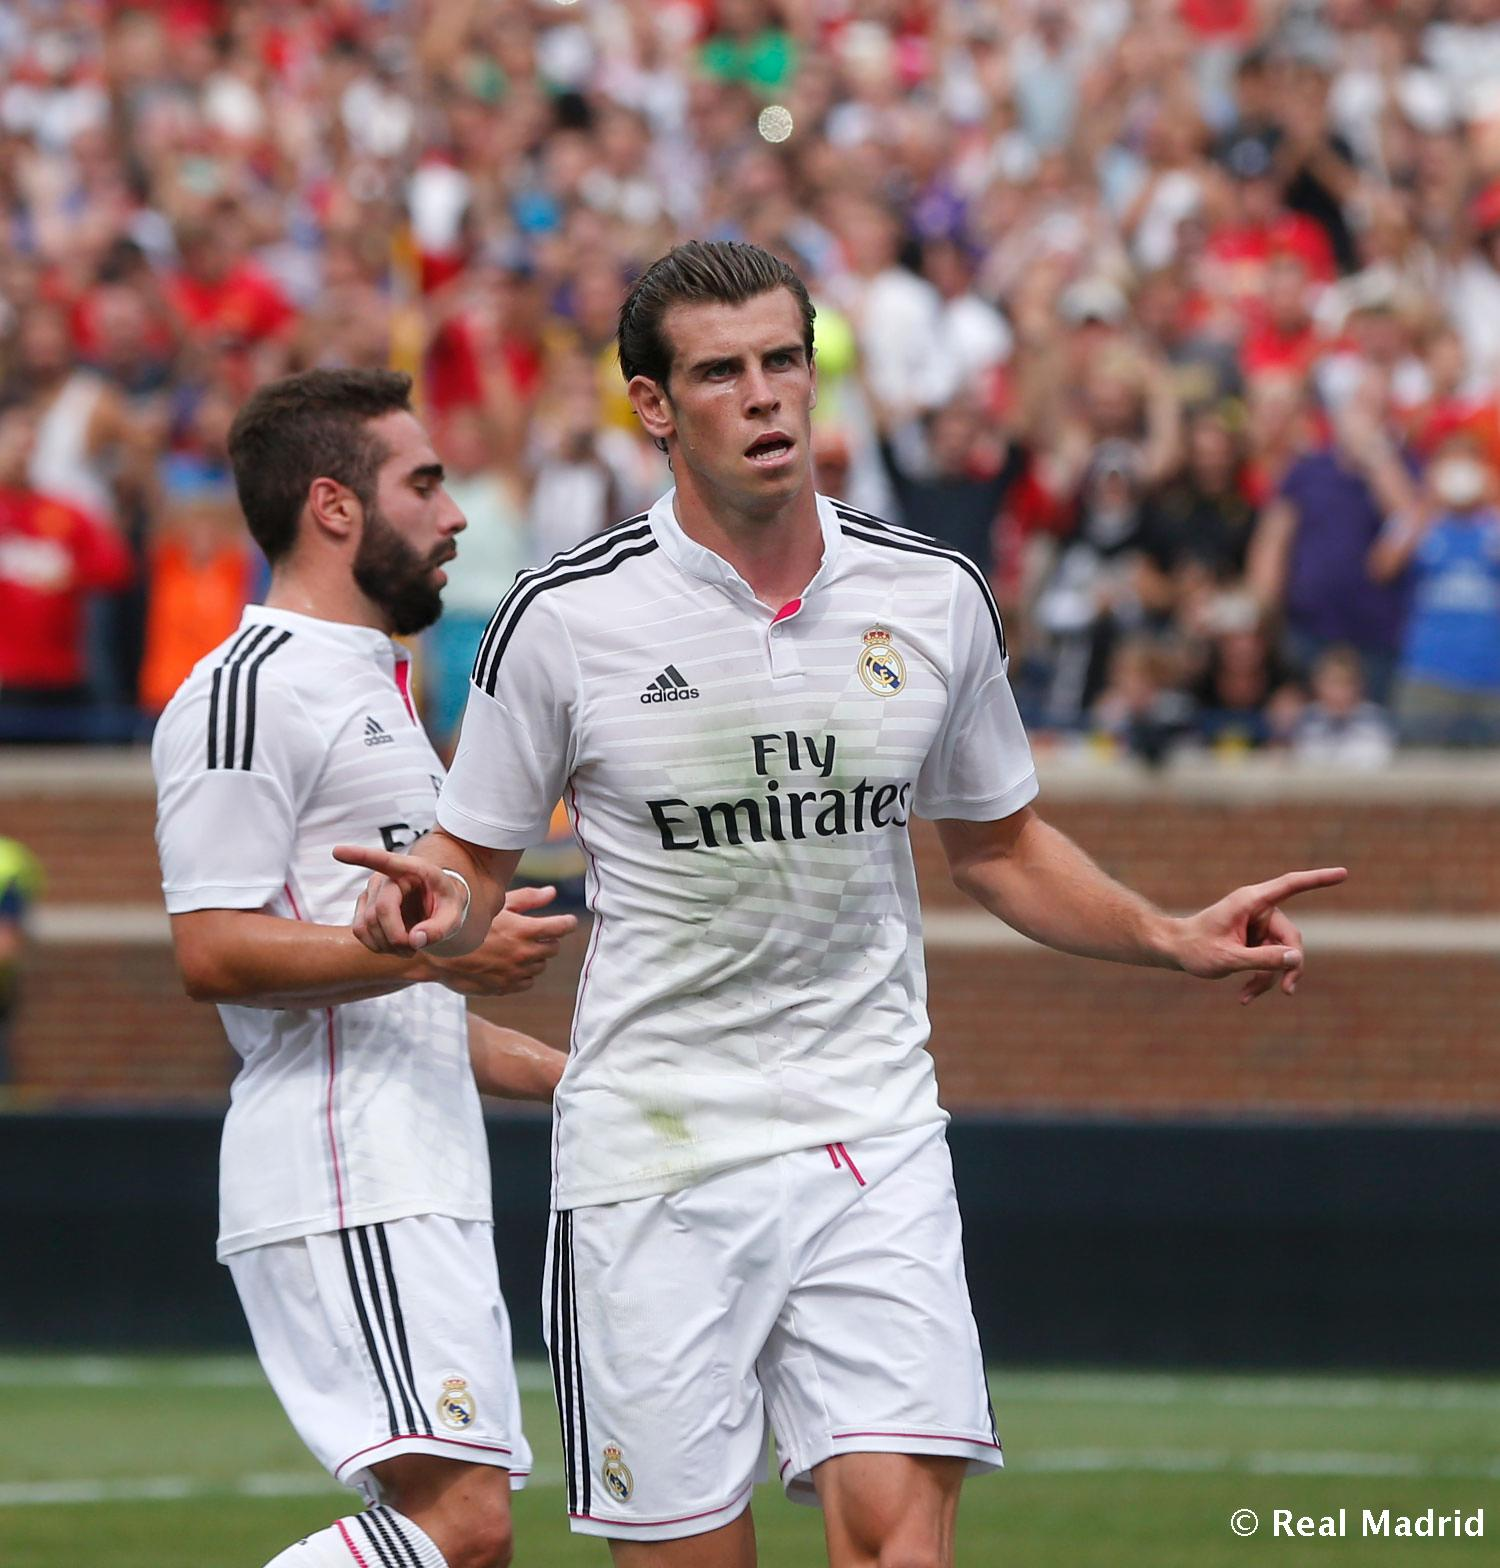 Real Madrid - Manchester United - Real Madrid - 02-08-2014